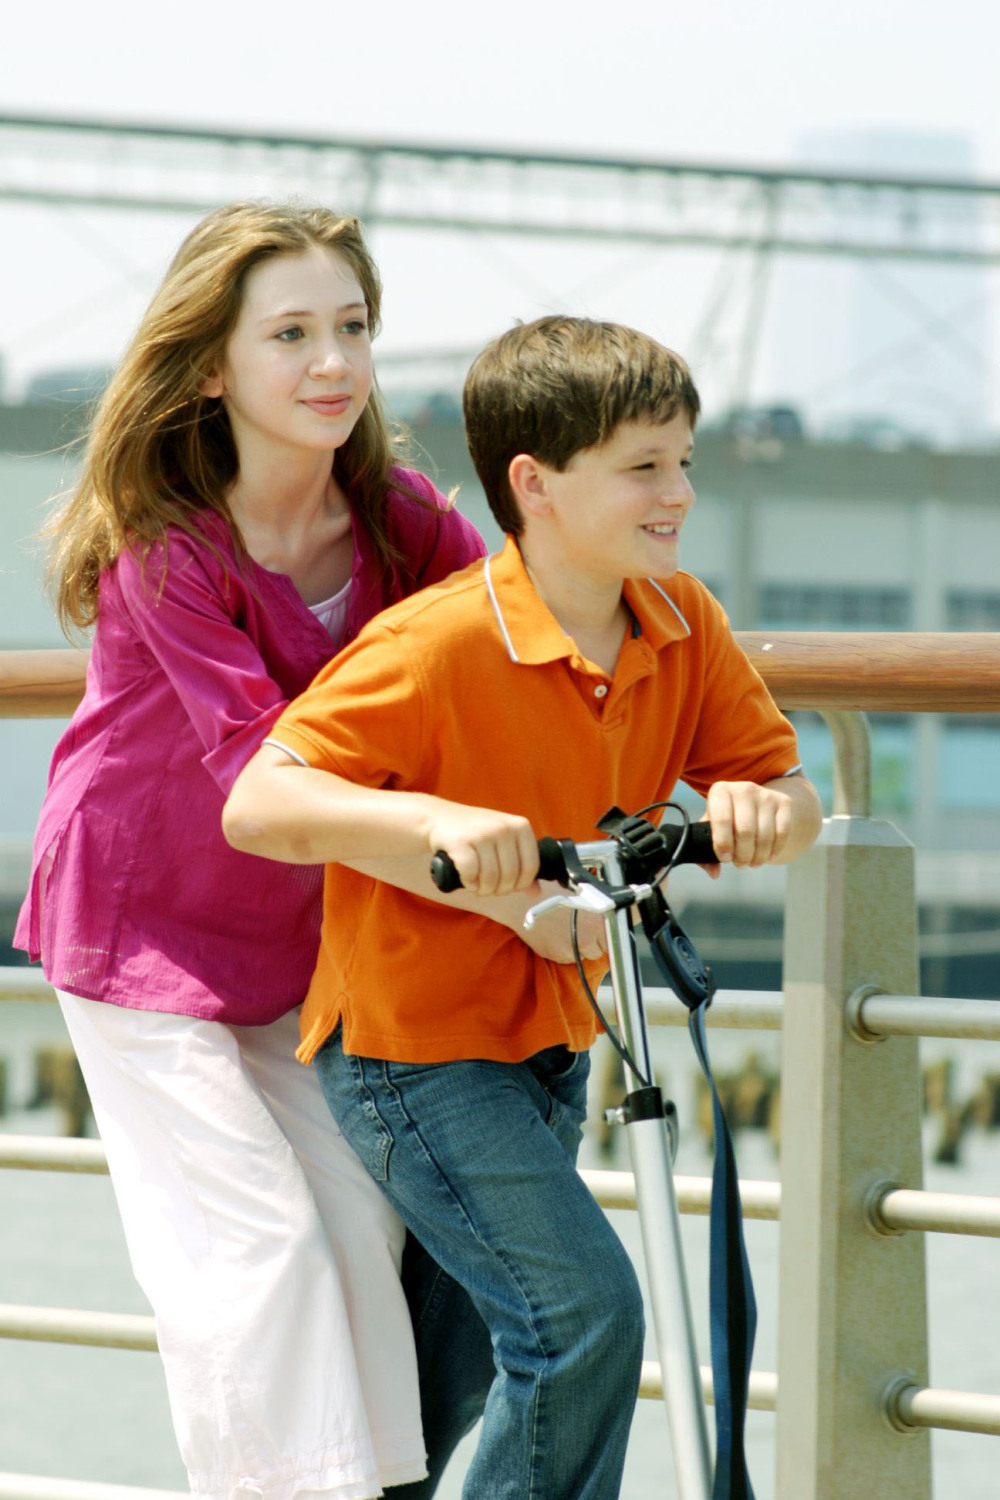 Little Manhattan 2006, directed by Mark Levin | Film review